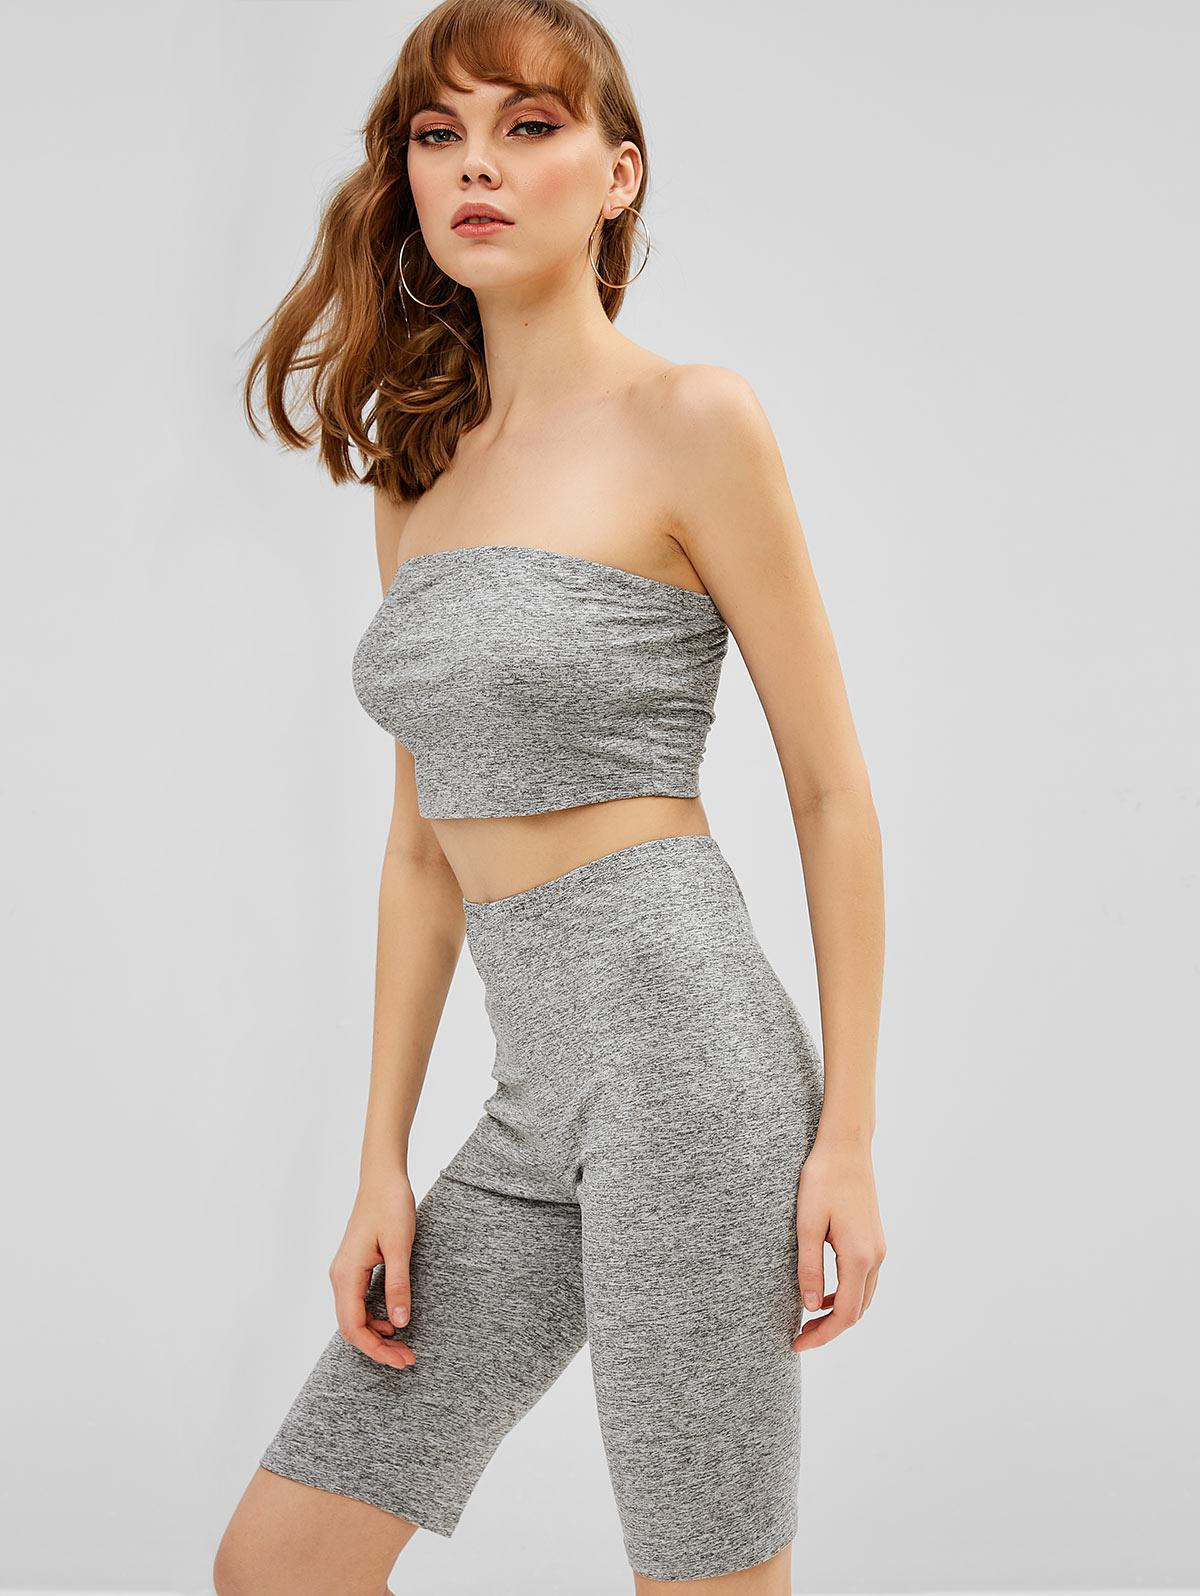 ZAFUL Plain Bandeau Top And Biker Shorts Set, Gray